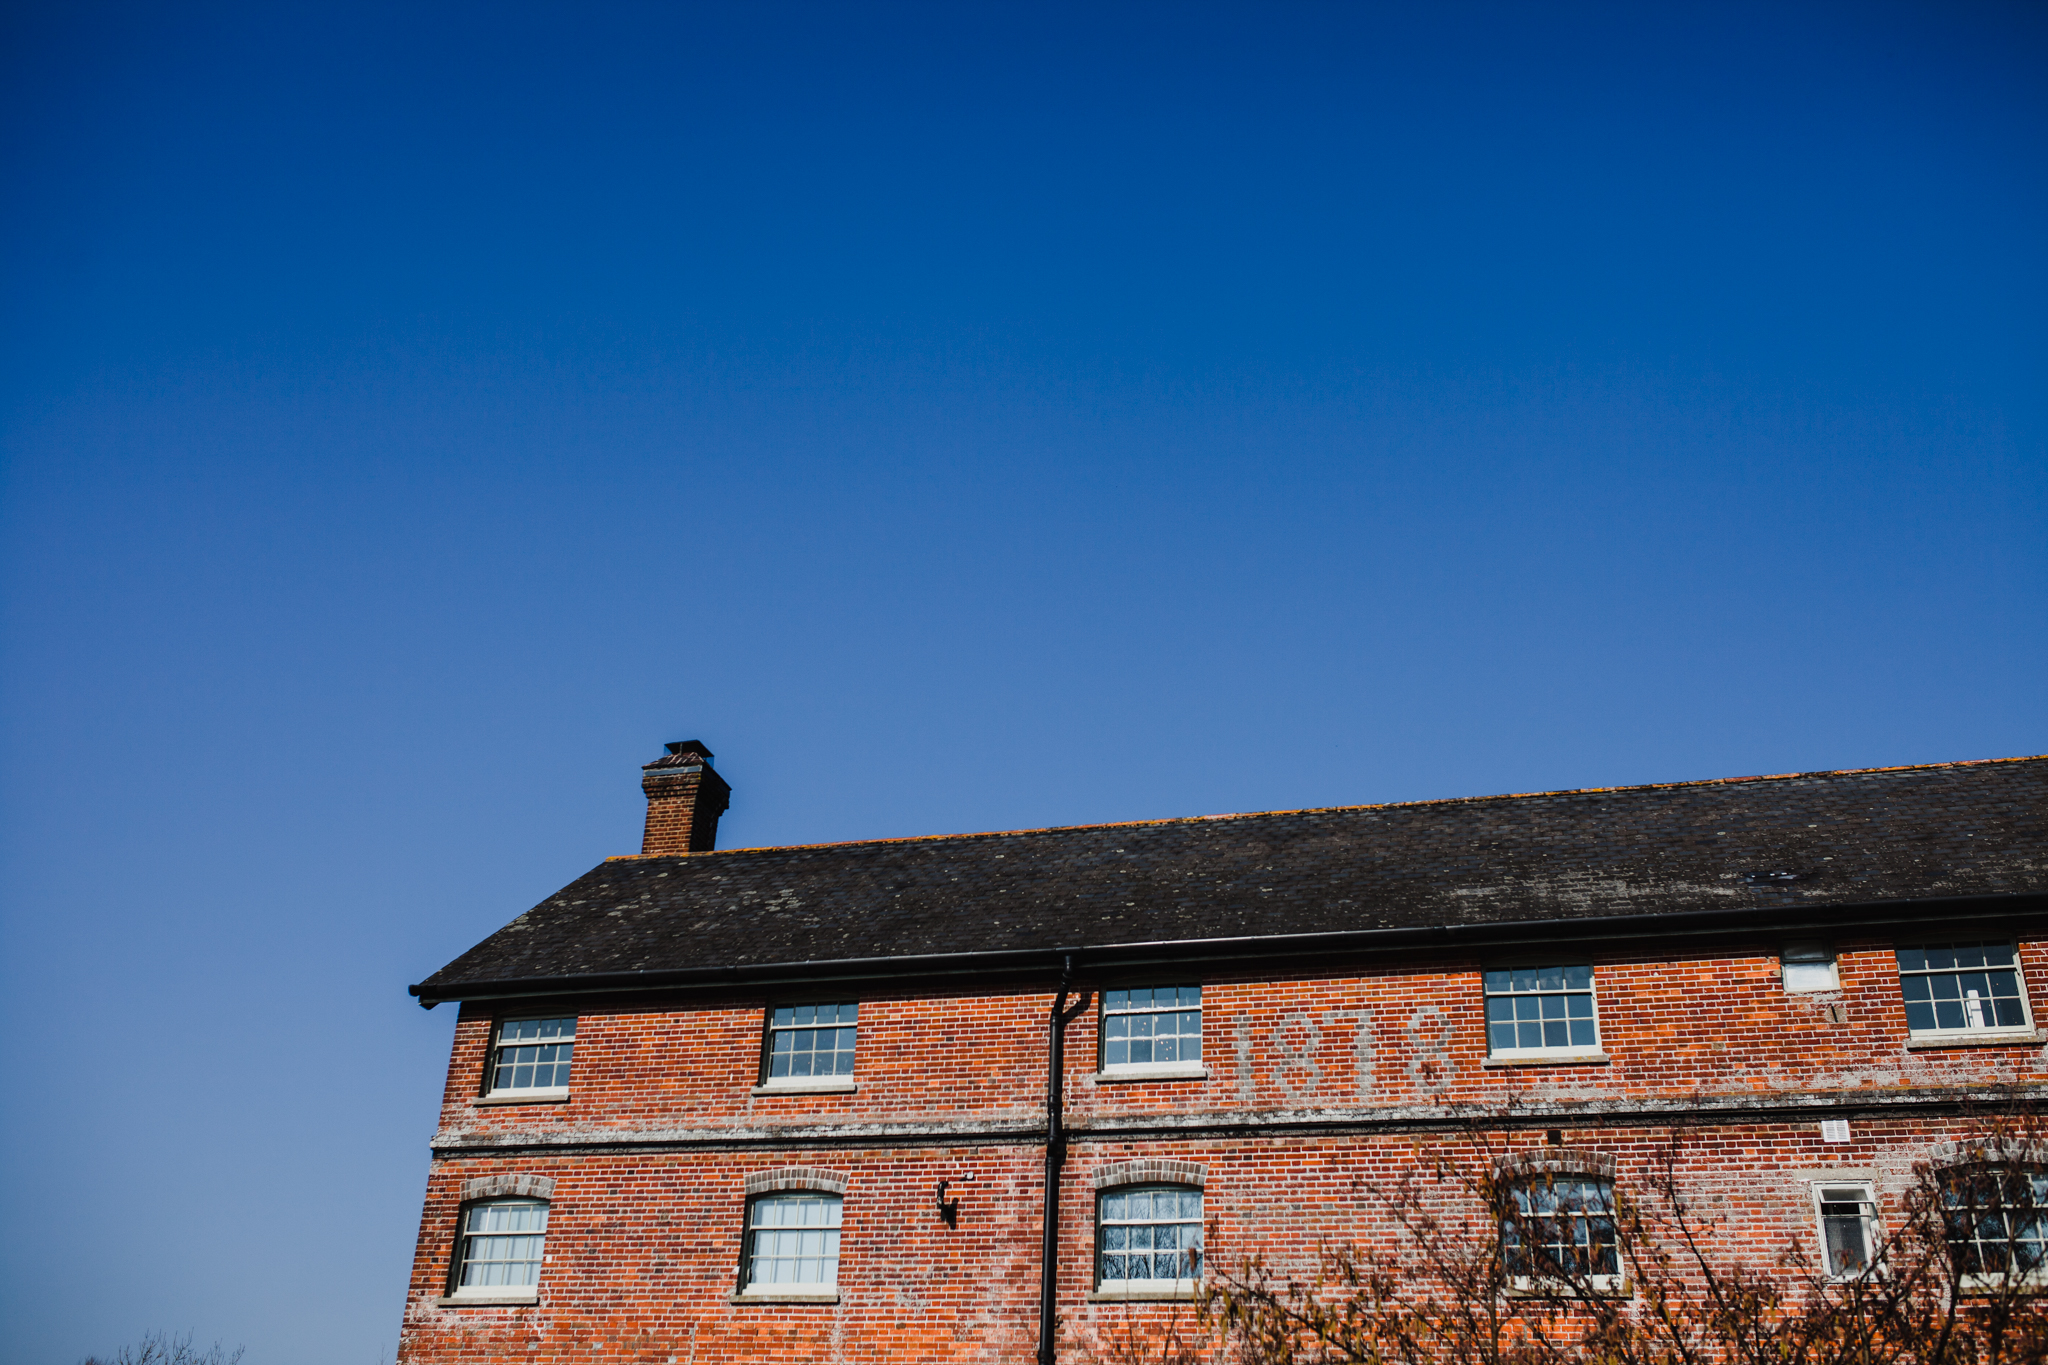 Sopley Mill on a bright sunny day